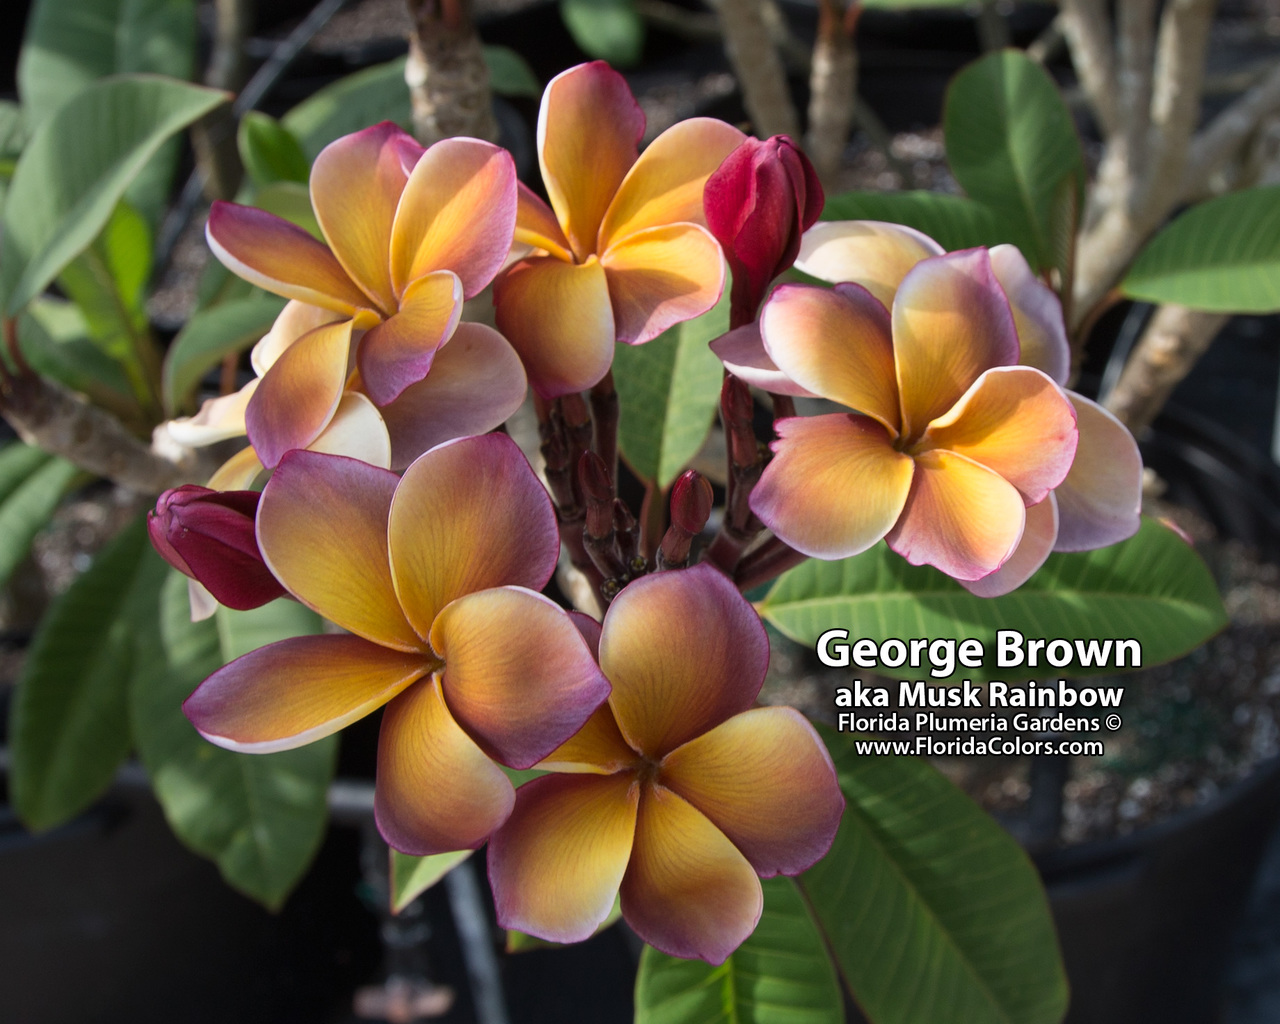 Musk Rainbow (grafted with roots) aka George Brown Plumeria Questions & Answers